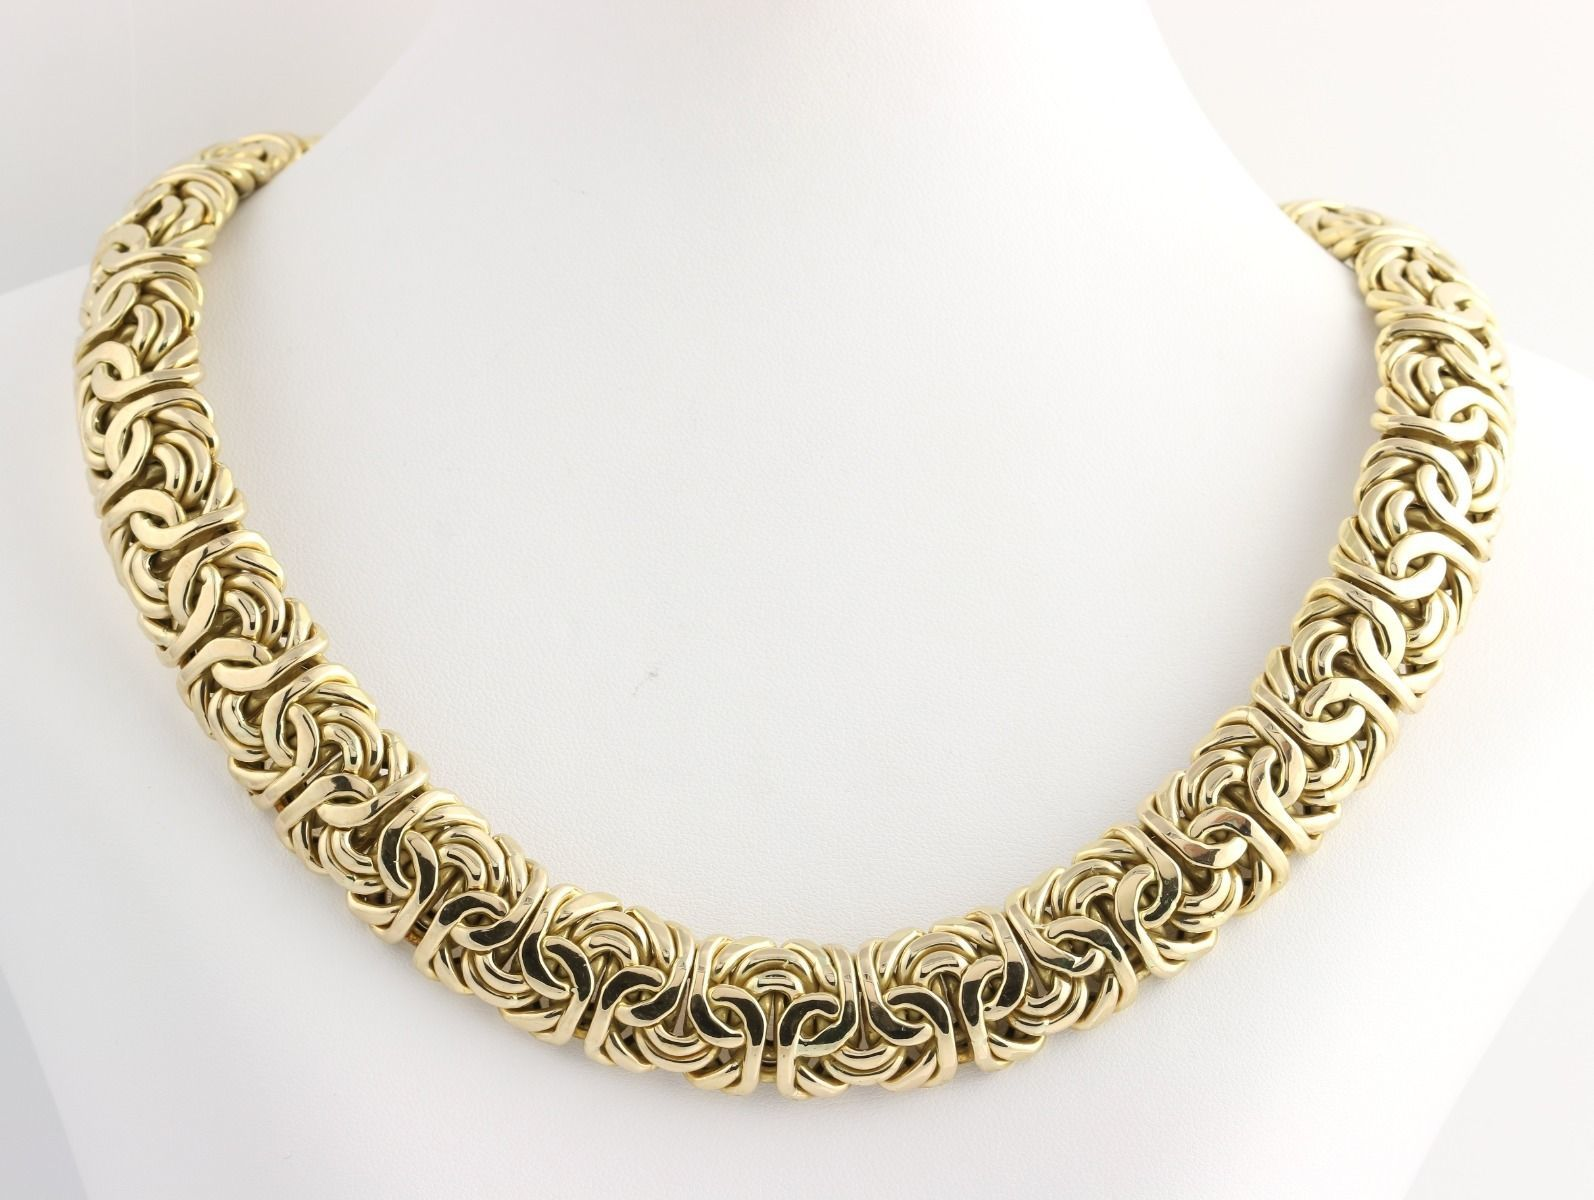 byzantine chain necklace 18 75 034 14k yellow gold large